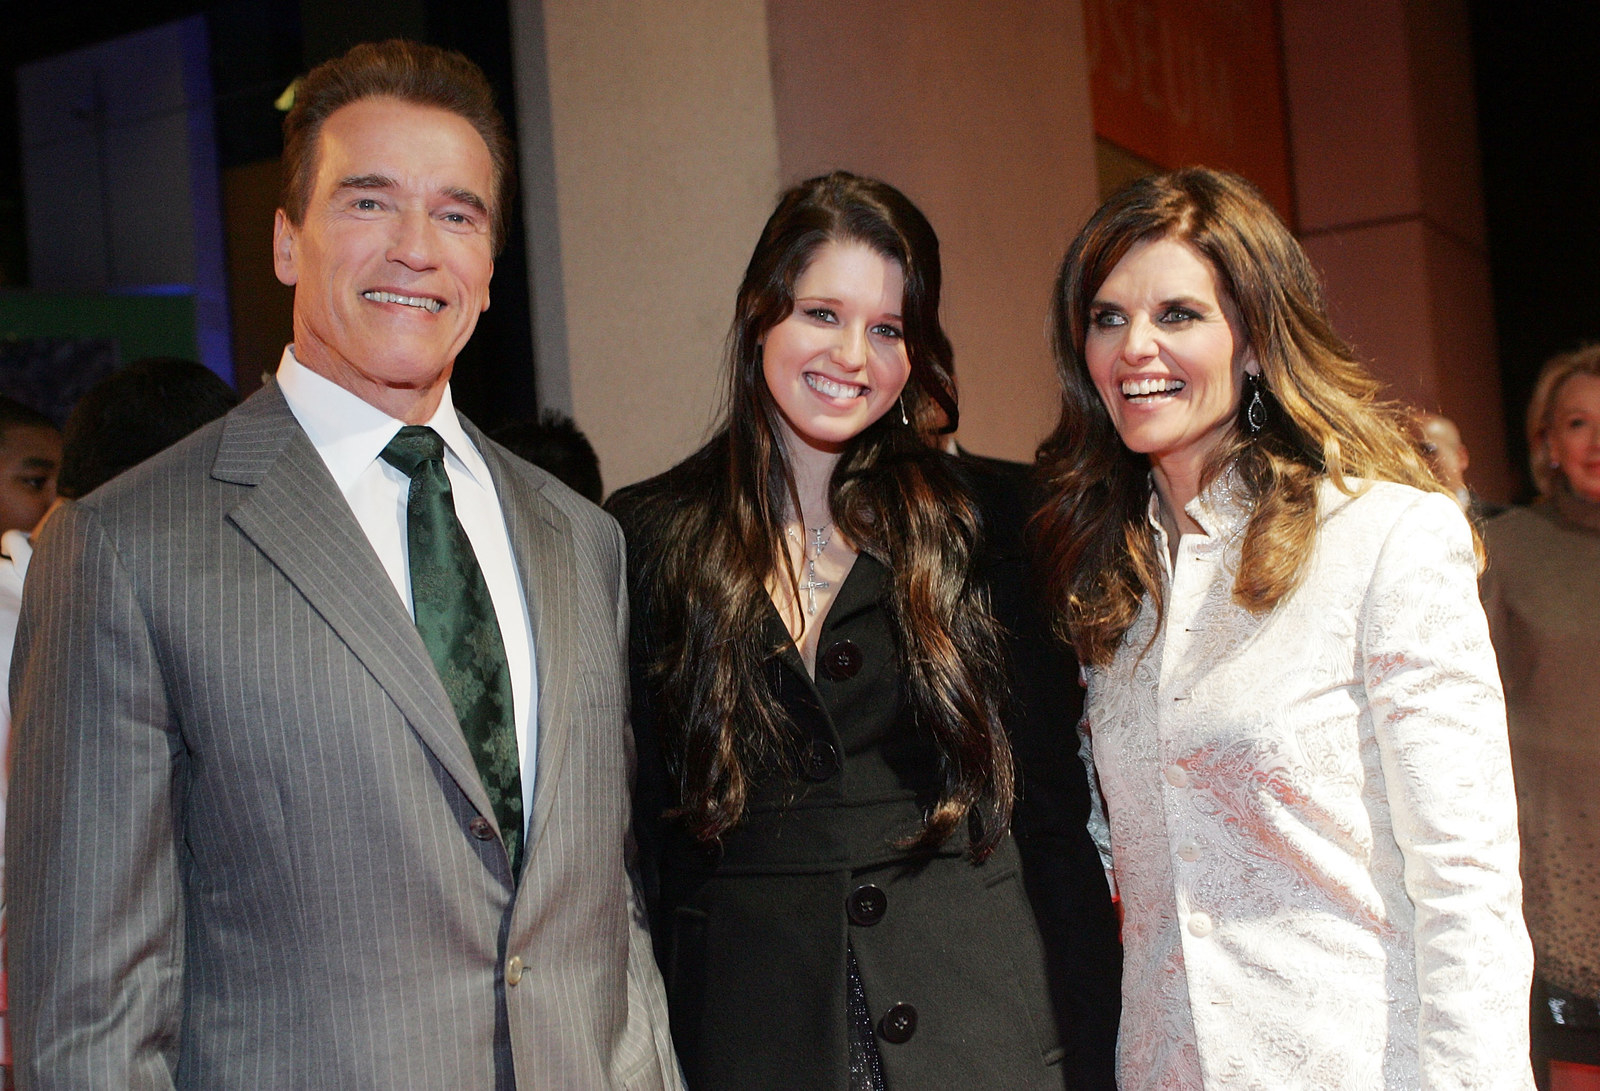 But if her last name rings some bells for you, that would make a lot of sense — her parents are Arnold Schwarzenegger and Maria Shriver. Here they are all together in 2007